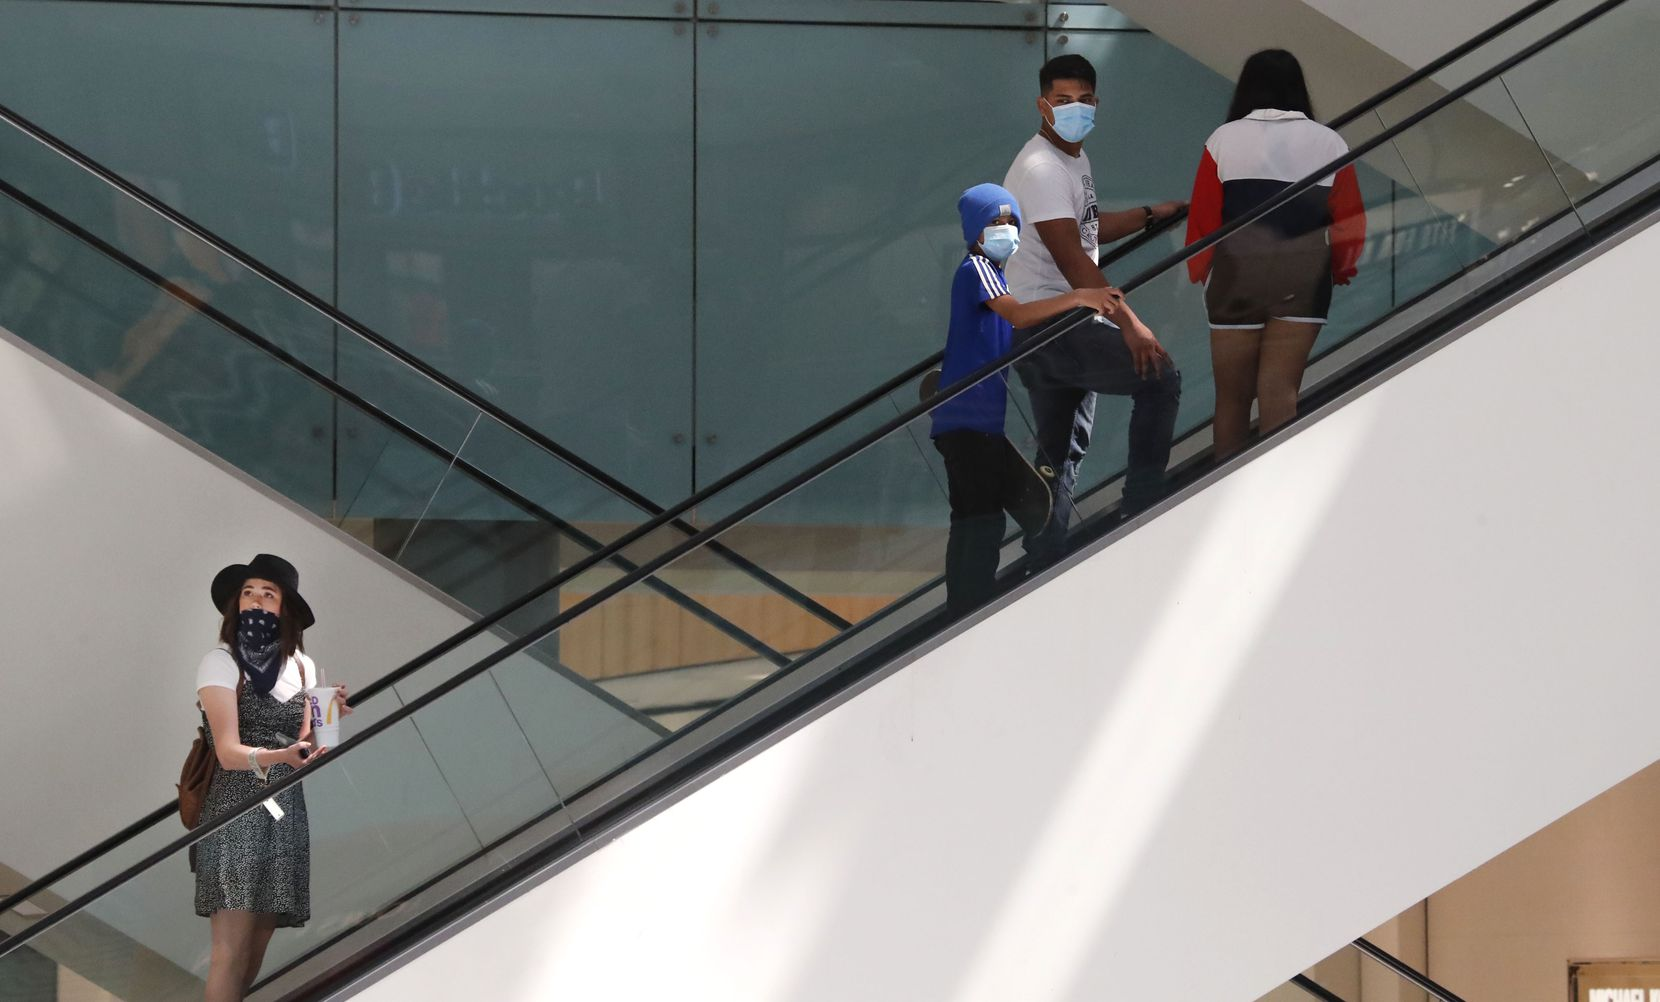 Amid concerns of the spread of COVID-19, shoppers wear masks inside the Galleria Dallas mall on May 4.